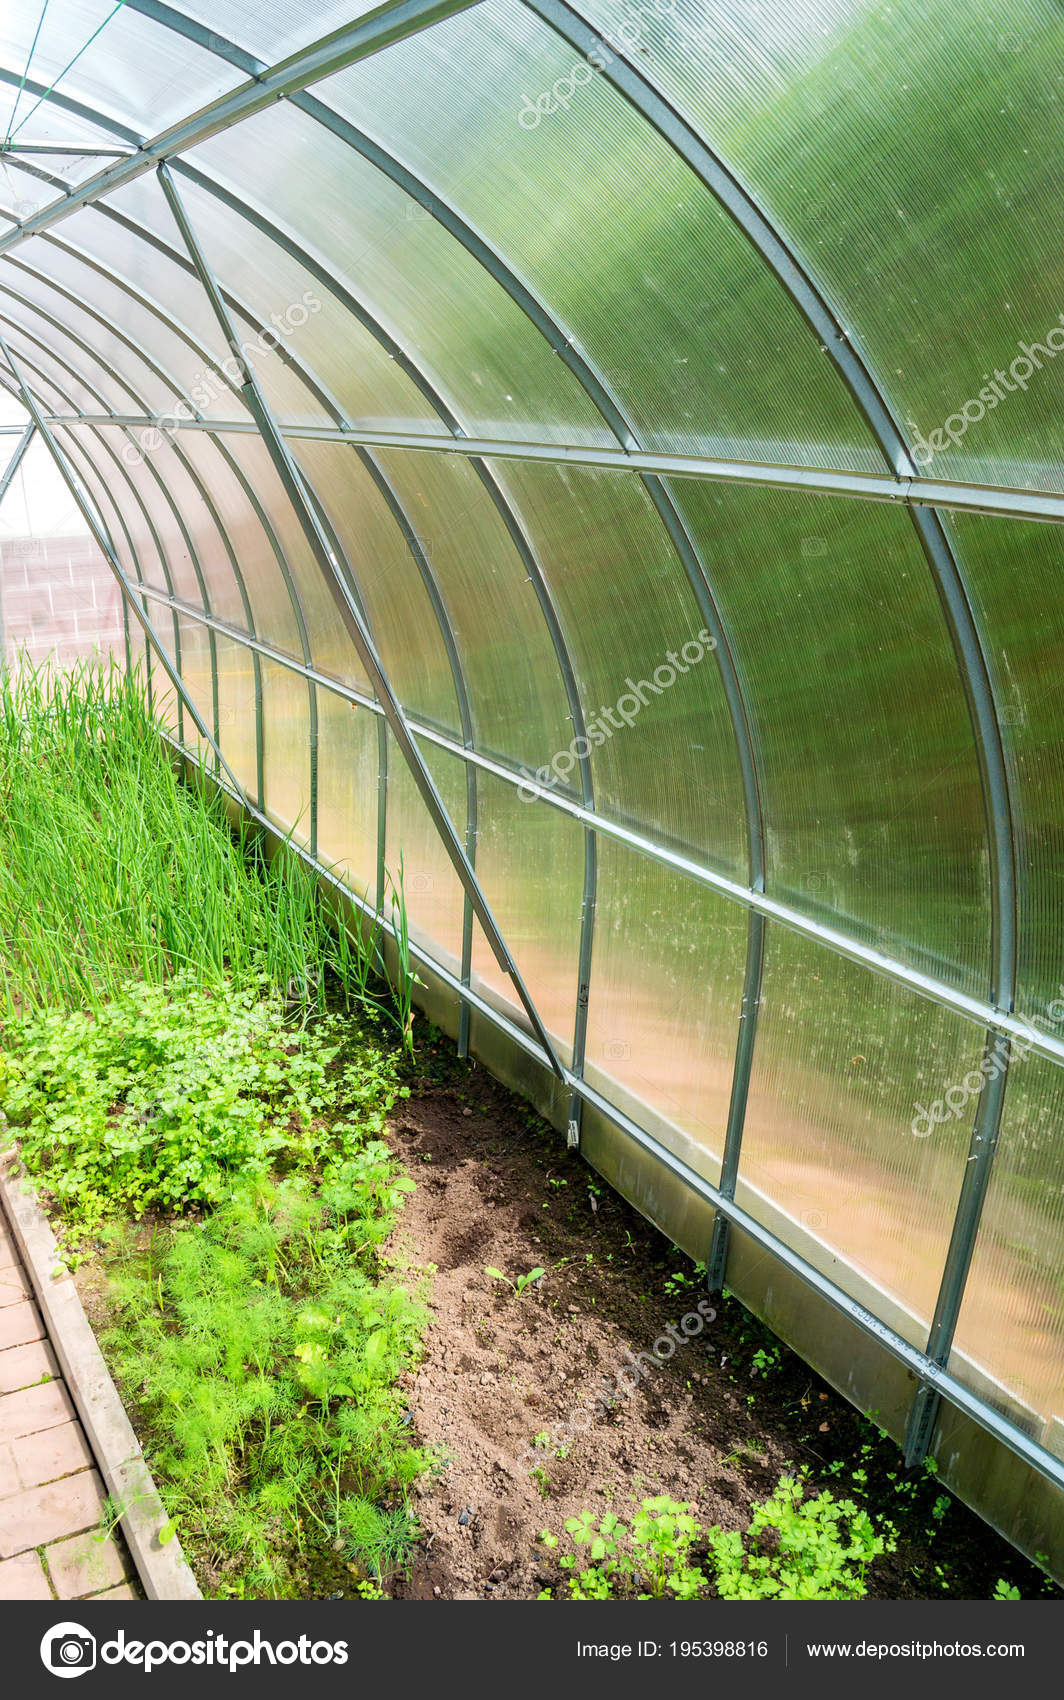 Admirable Inside Small Garden Greenhouse Stock Photo C Greentellect Home Interior And Landscaping Ologienasavecom